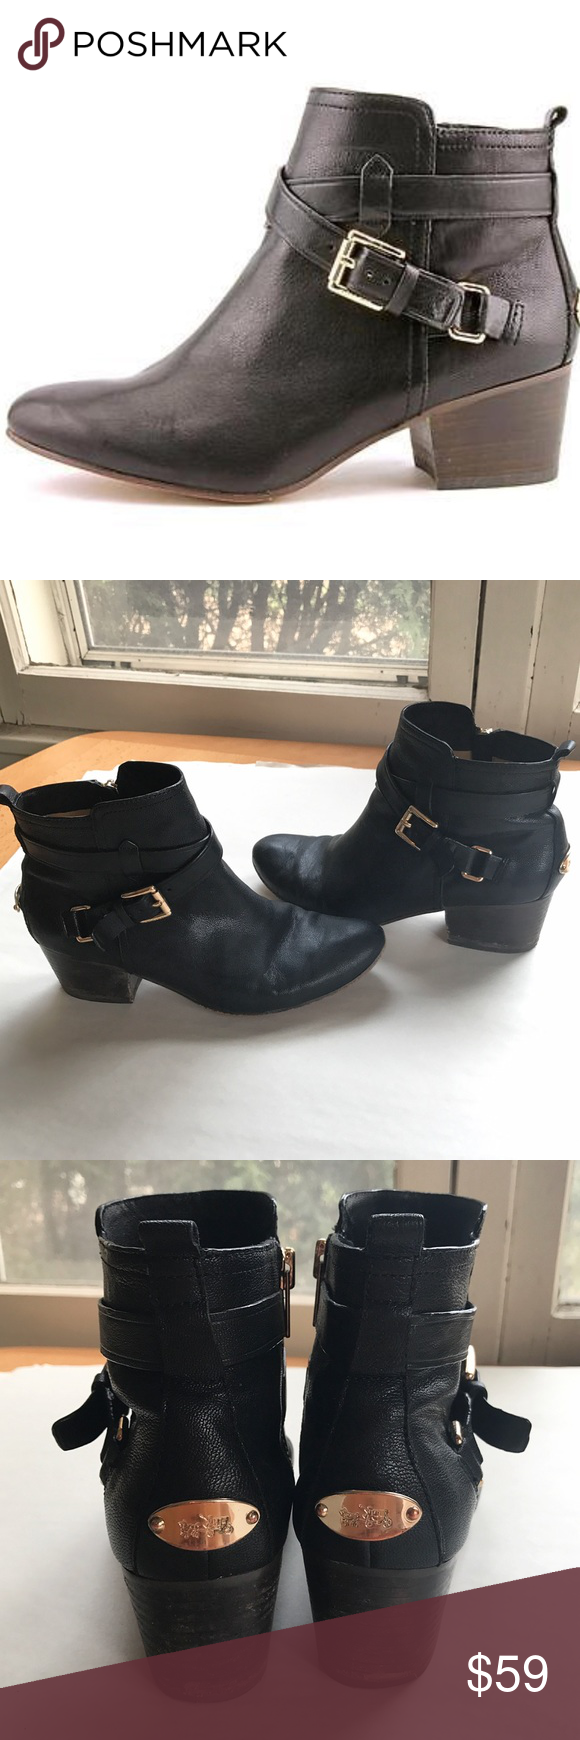 Coach Pauline booties 🕶💍 Sexy and chic black ankle booties from Coach. Used-in great condition! Size 8.5. Coach Shoes Ankle Boots & Booties